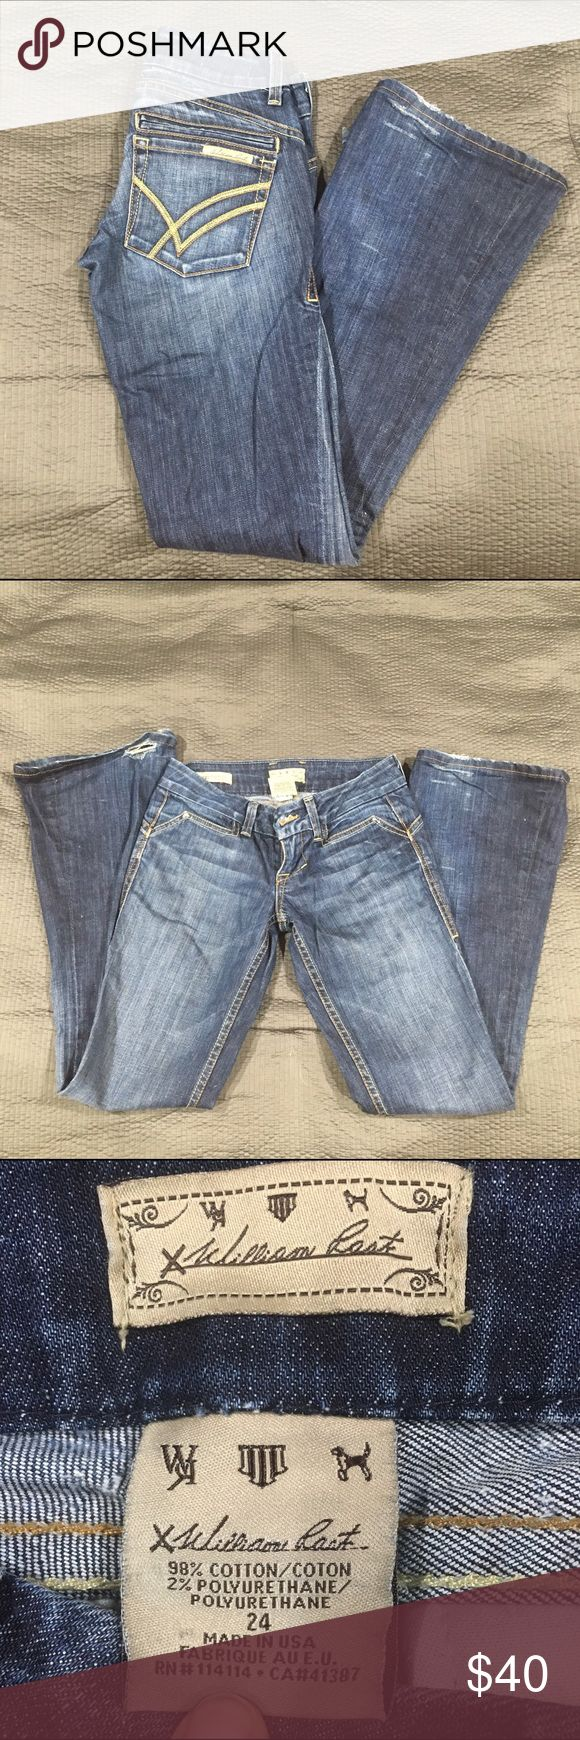 William Rast Savoy jeans William Rast Savoy jeans! These were my favorite pair of jeans! They are great quality and they look amazing on. Sadly they don't fit anymore. Tag says 24 but could fit a 25 as well, they are flare jeans. If you have any questions please feel free to ask! William Rast Jeans